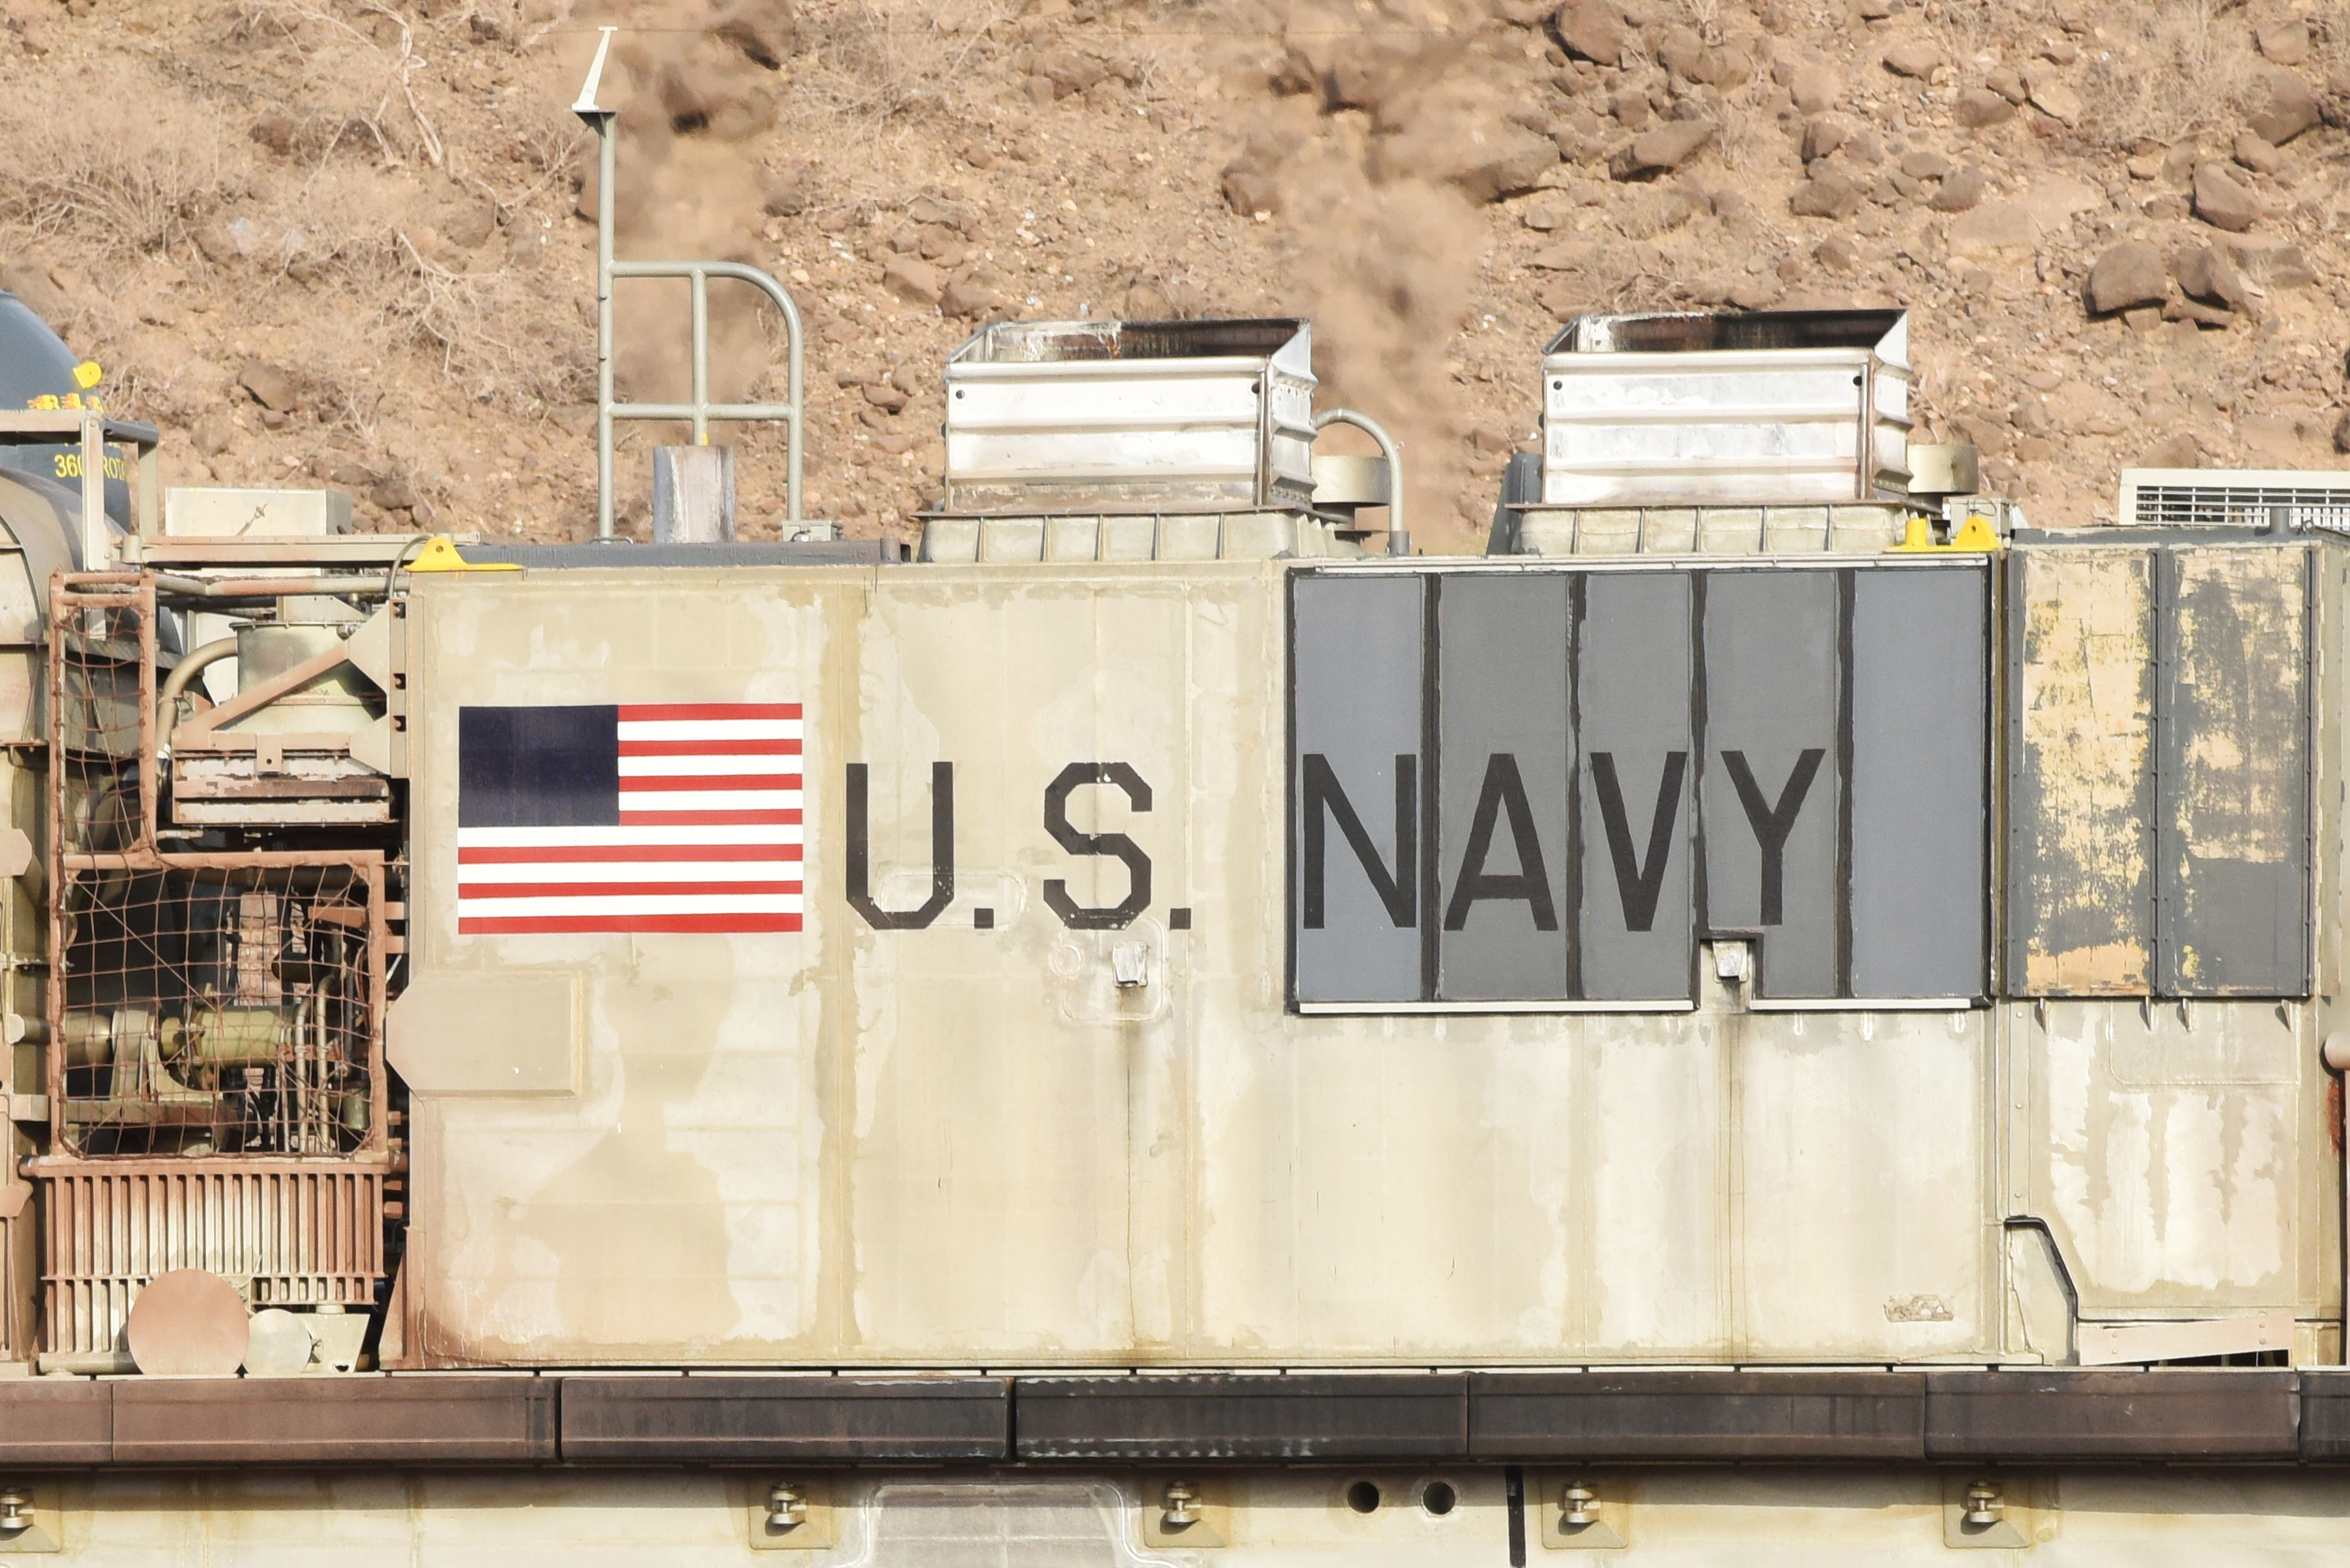 A U.S. Navy Landing Craft Air Cushion (LCAC) sits on a beach in Arta, Djibouti, July 20, 2015, while U.S. Marines from the 15th Marine Expeditionary Unit exited and their equipment were unloaded from the vessel. LCACs for USS Anchorage delivered U.S. Marines from the 15th Marine Expeditionary Unit and their equipment for sustainment training. (U.S. Air Force photo by Staff Sgt. Maria Bowman)